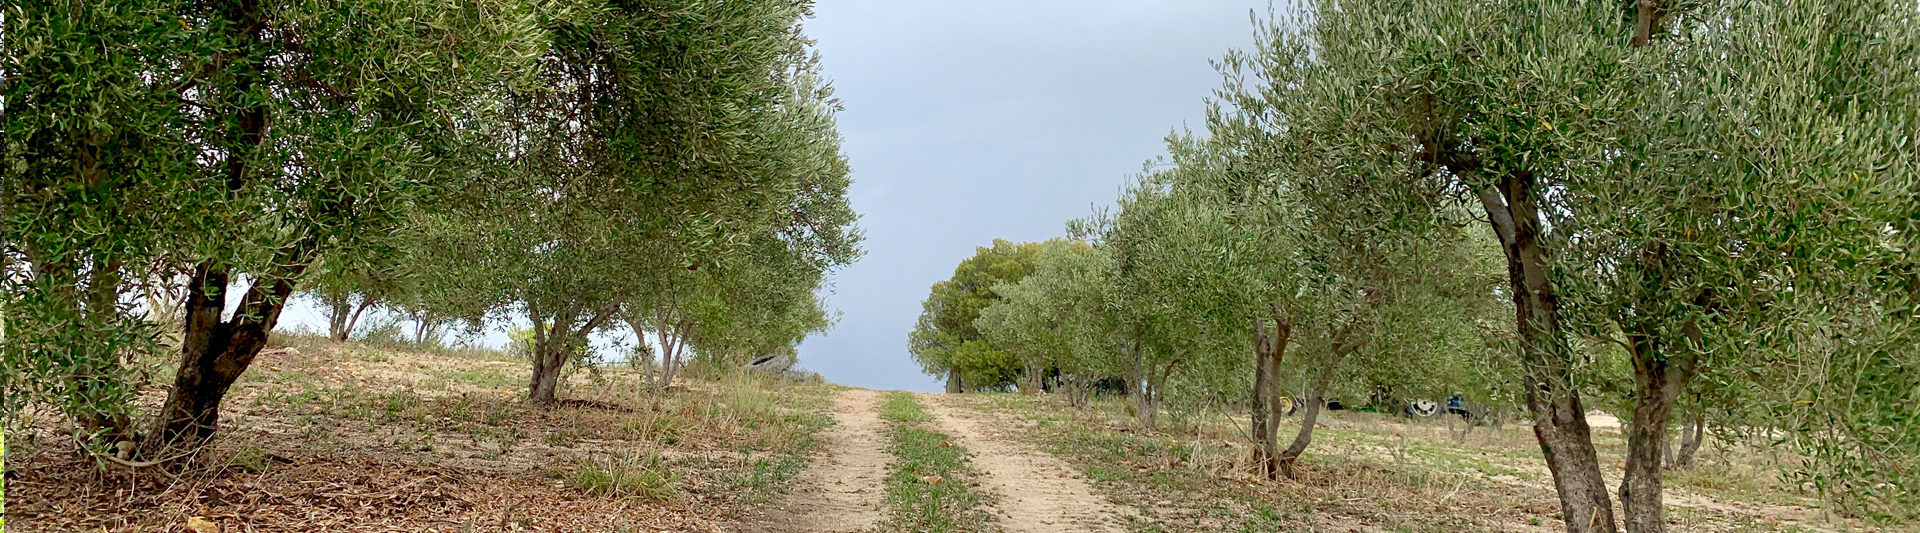 about-olive-trees